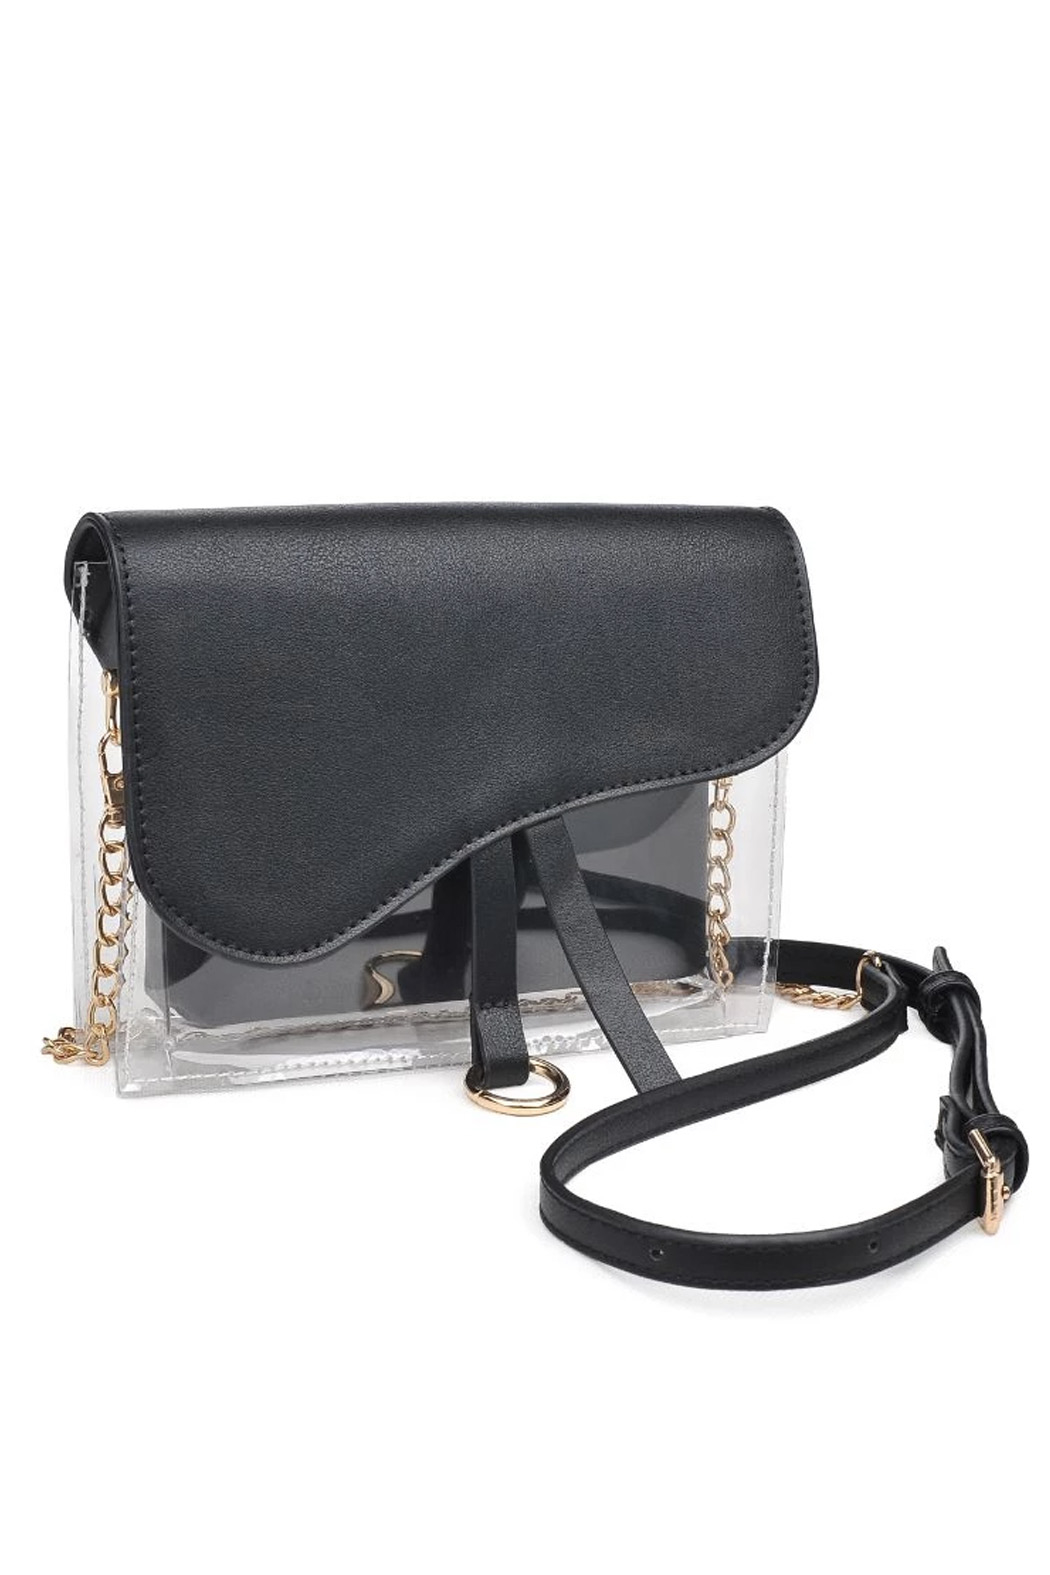 Urban Expressions Rally Vegan Leather Crossbody - Front Full Image